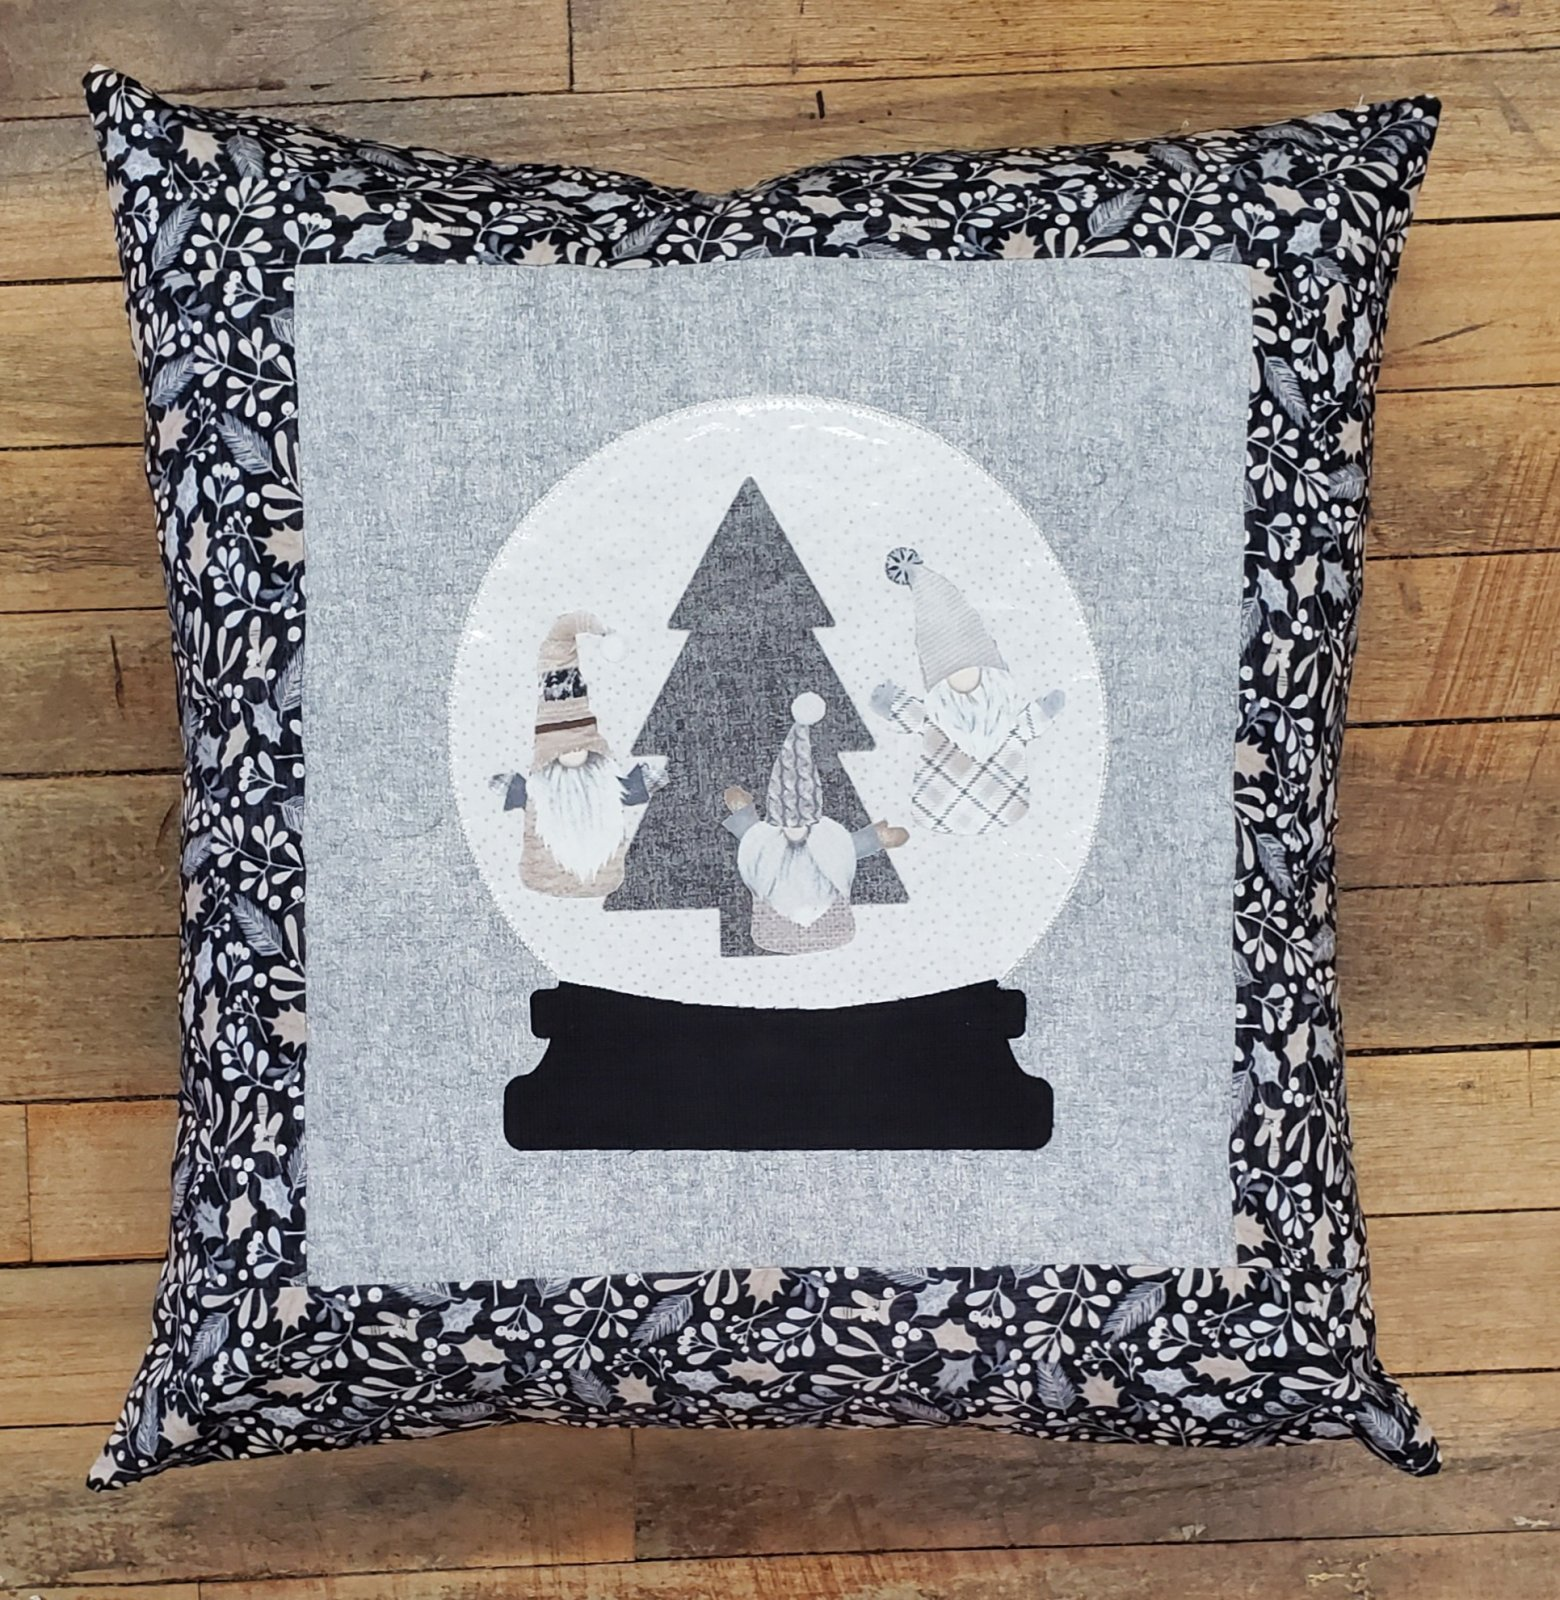 S'nome Globe Pillow Kit